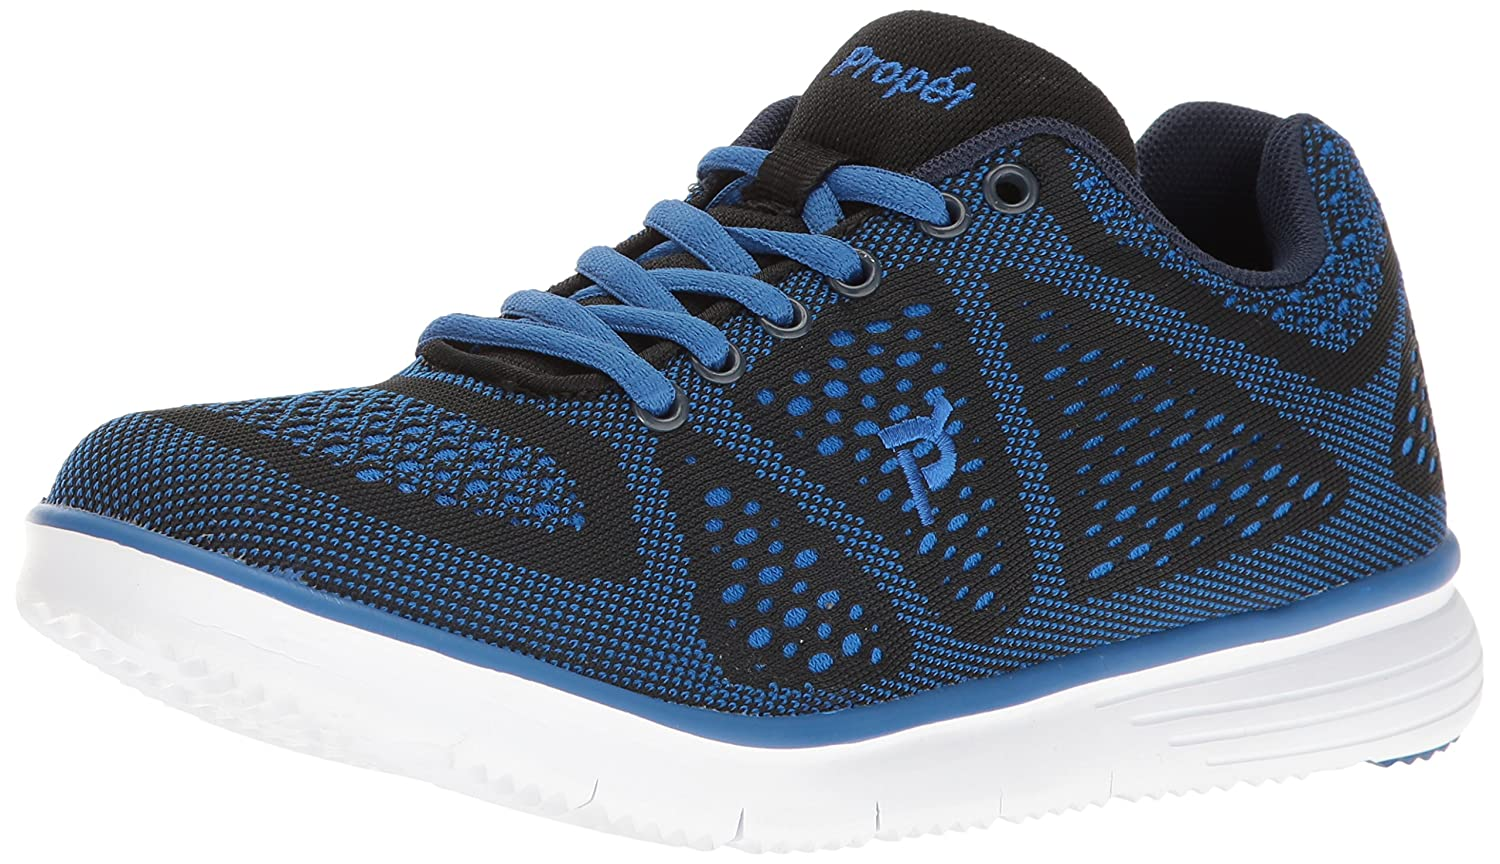 Propet Men's TravelFit Walking Shoe 9 3E US|Black/Blue